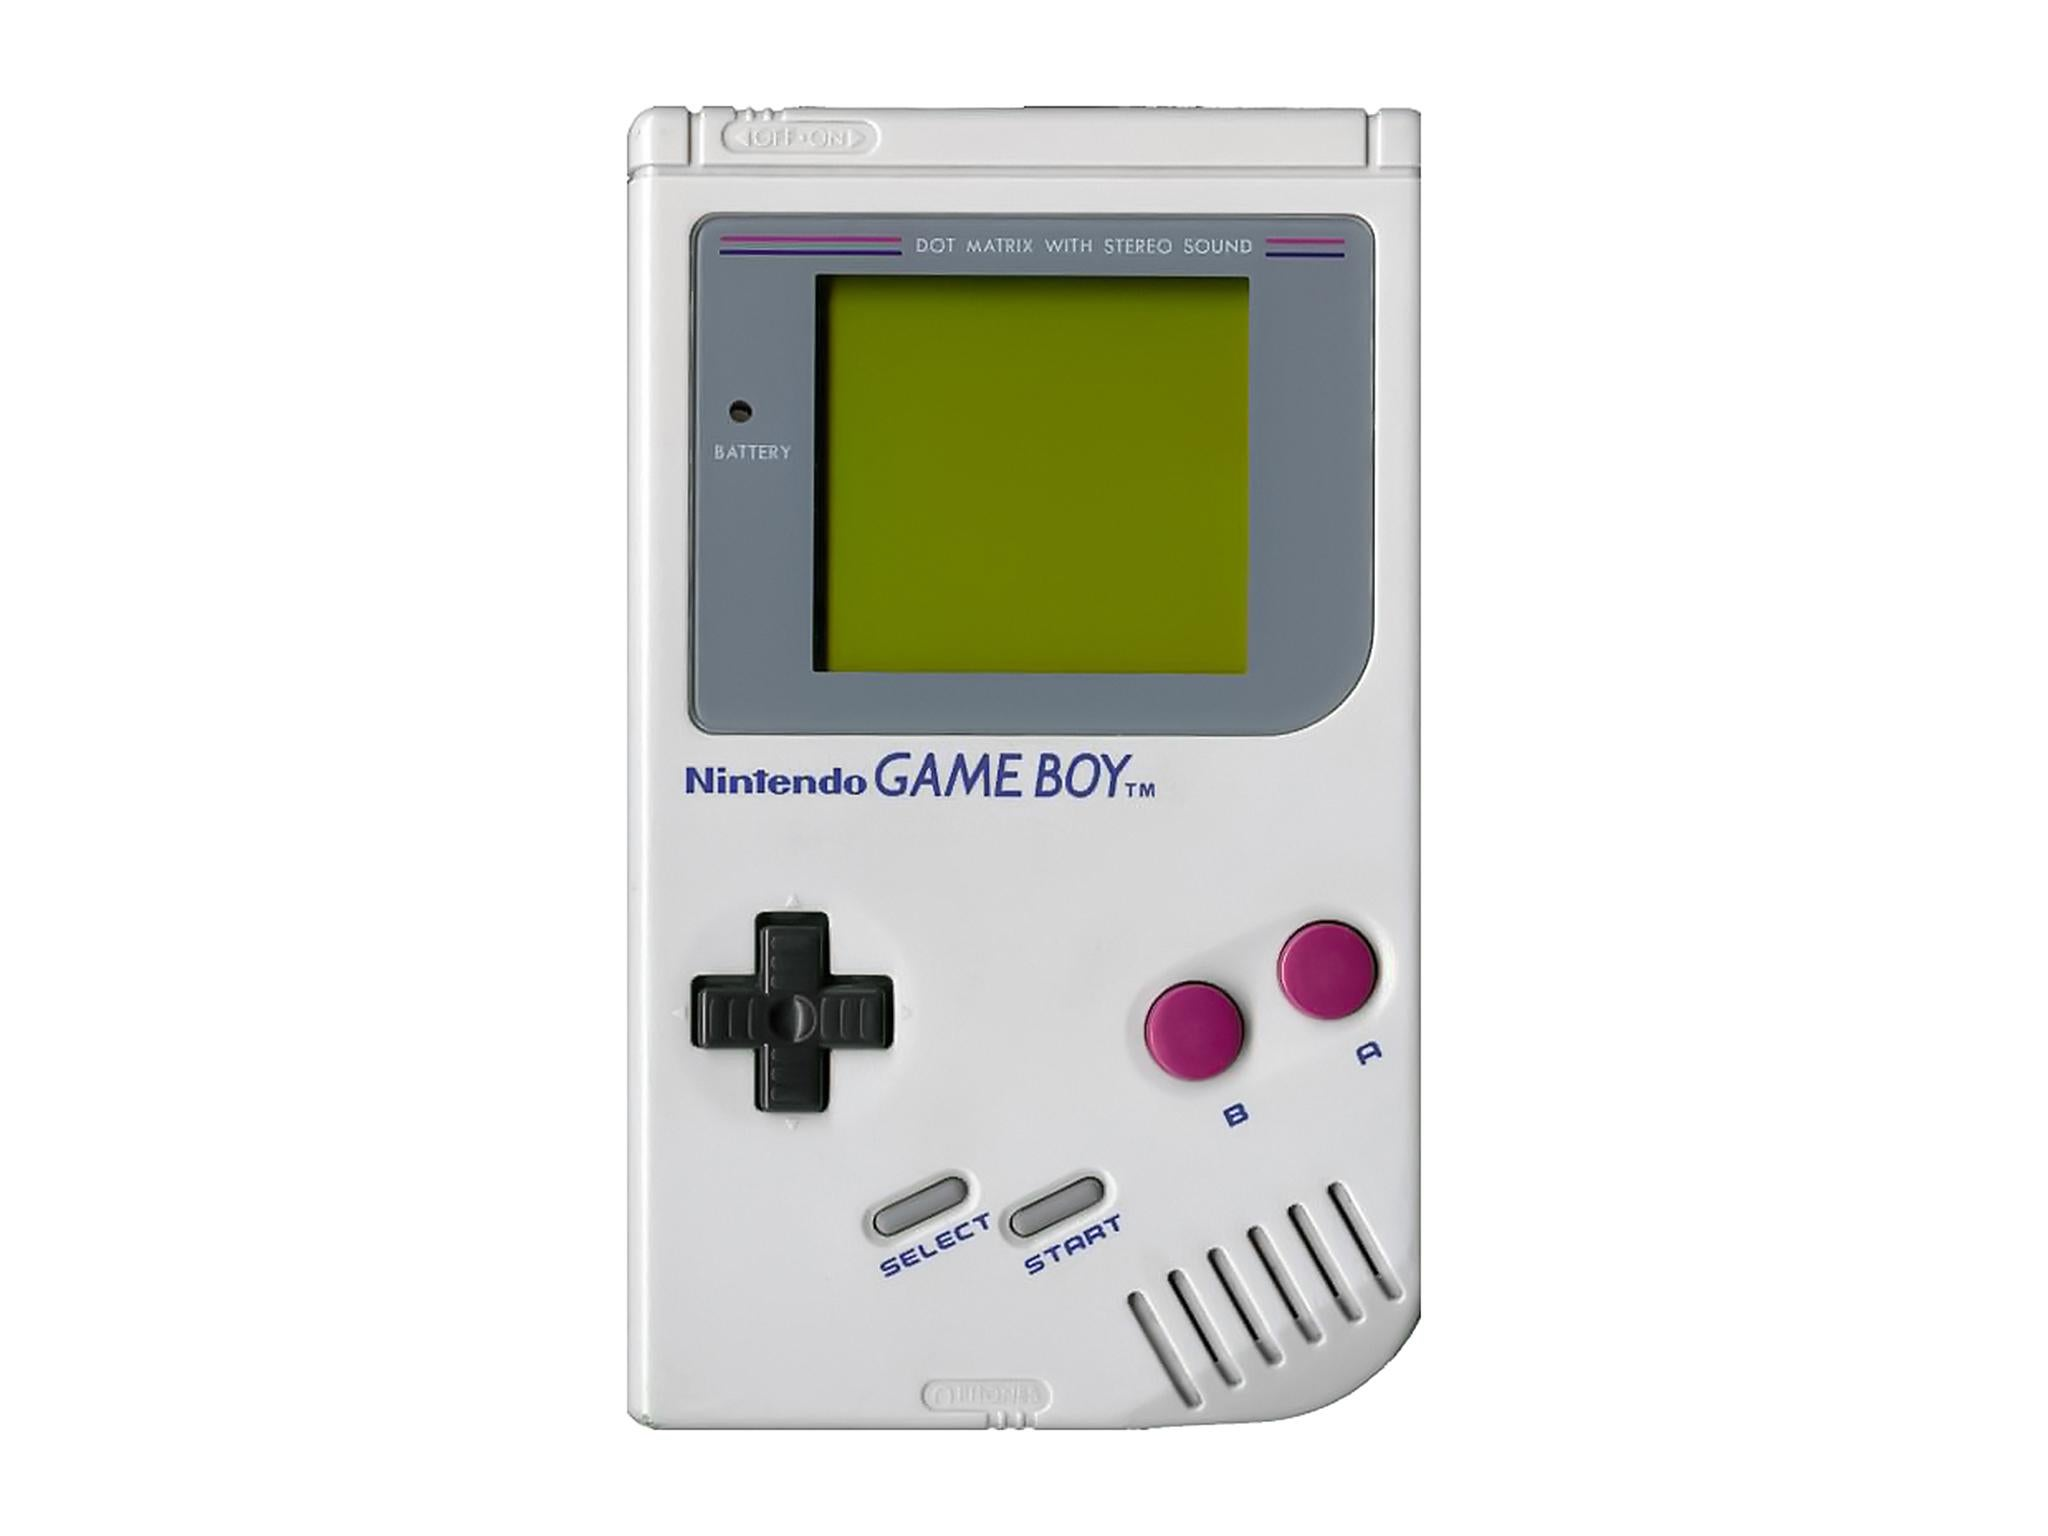 Game Boy Could Be Latest Classic Console To Return